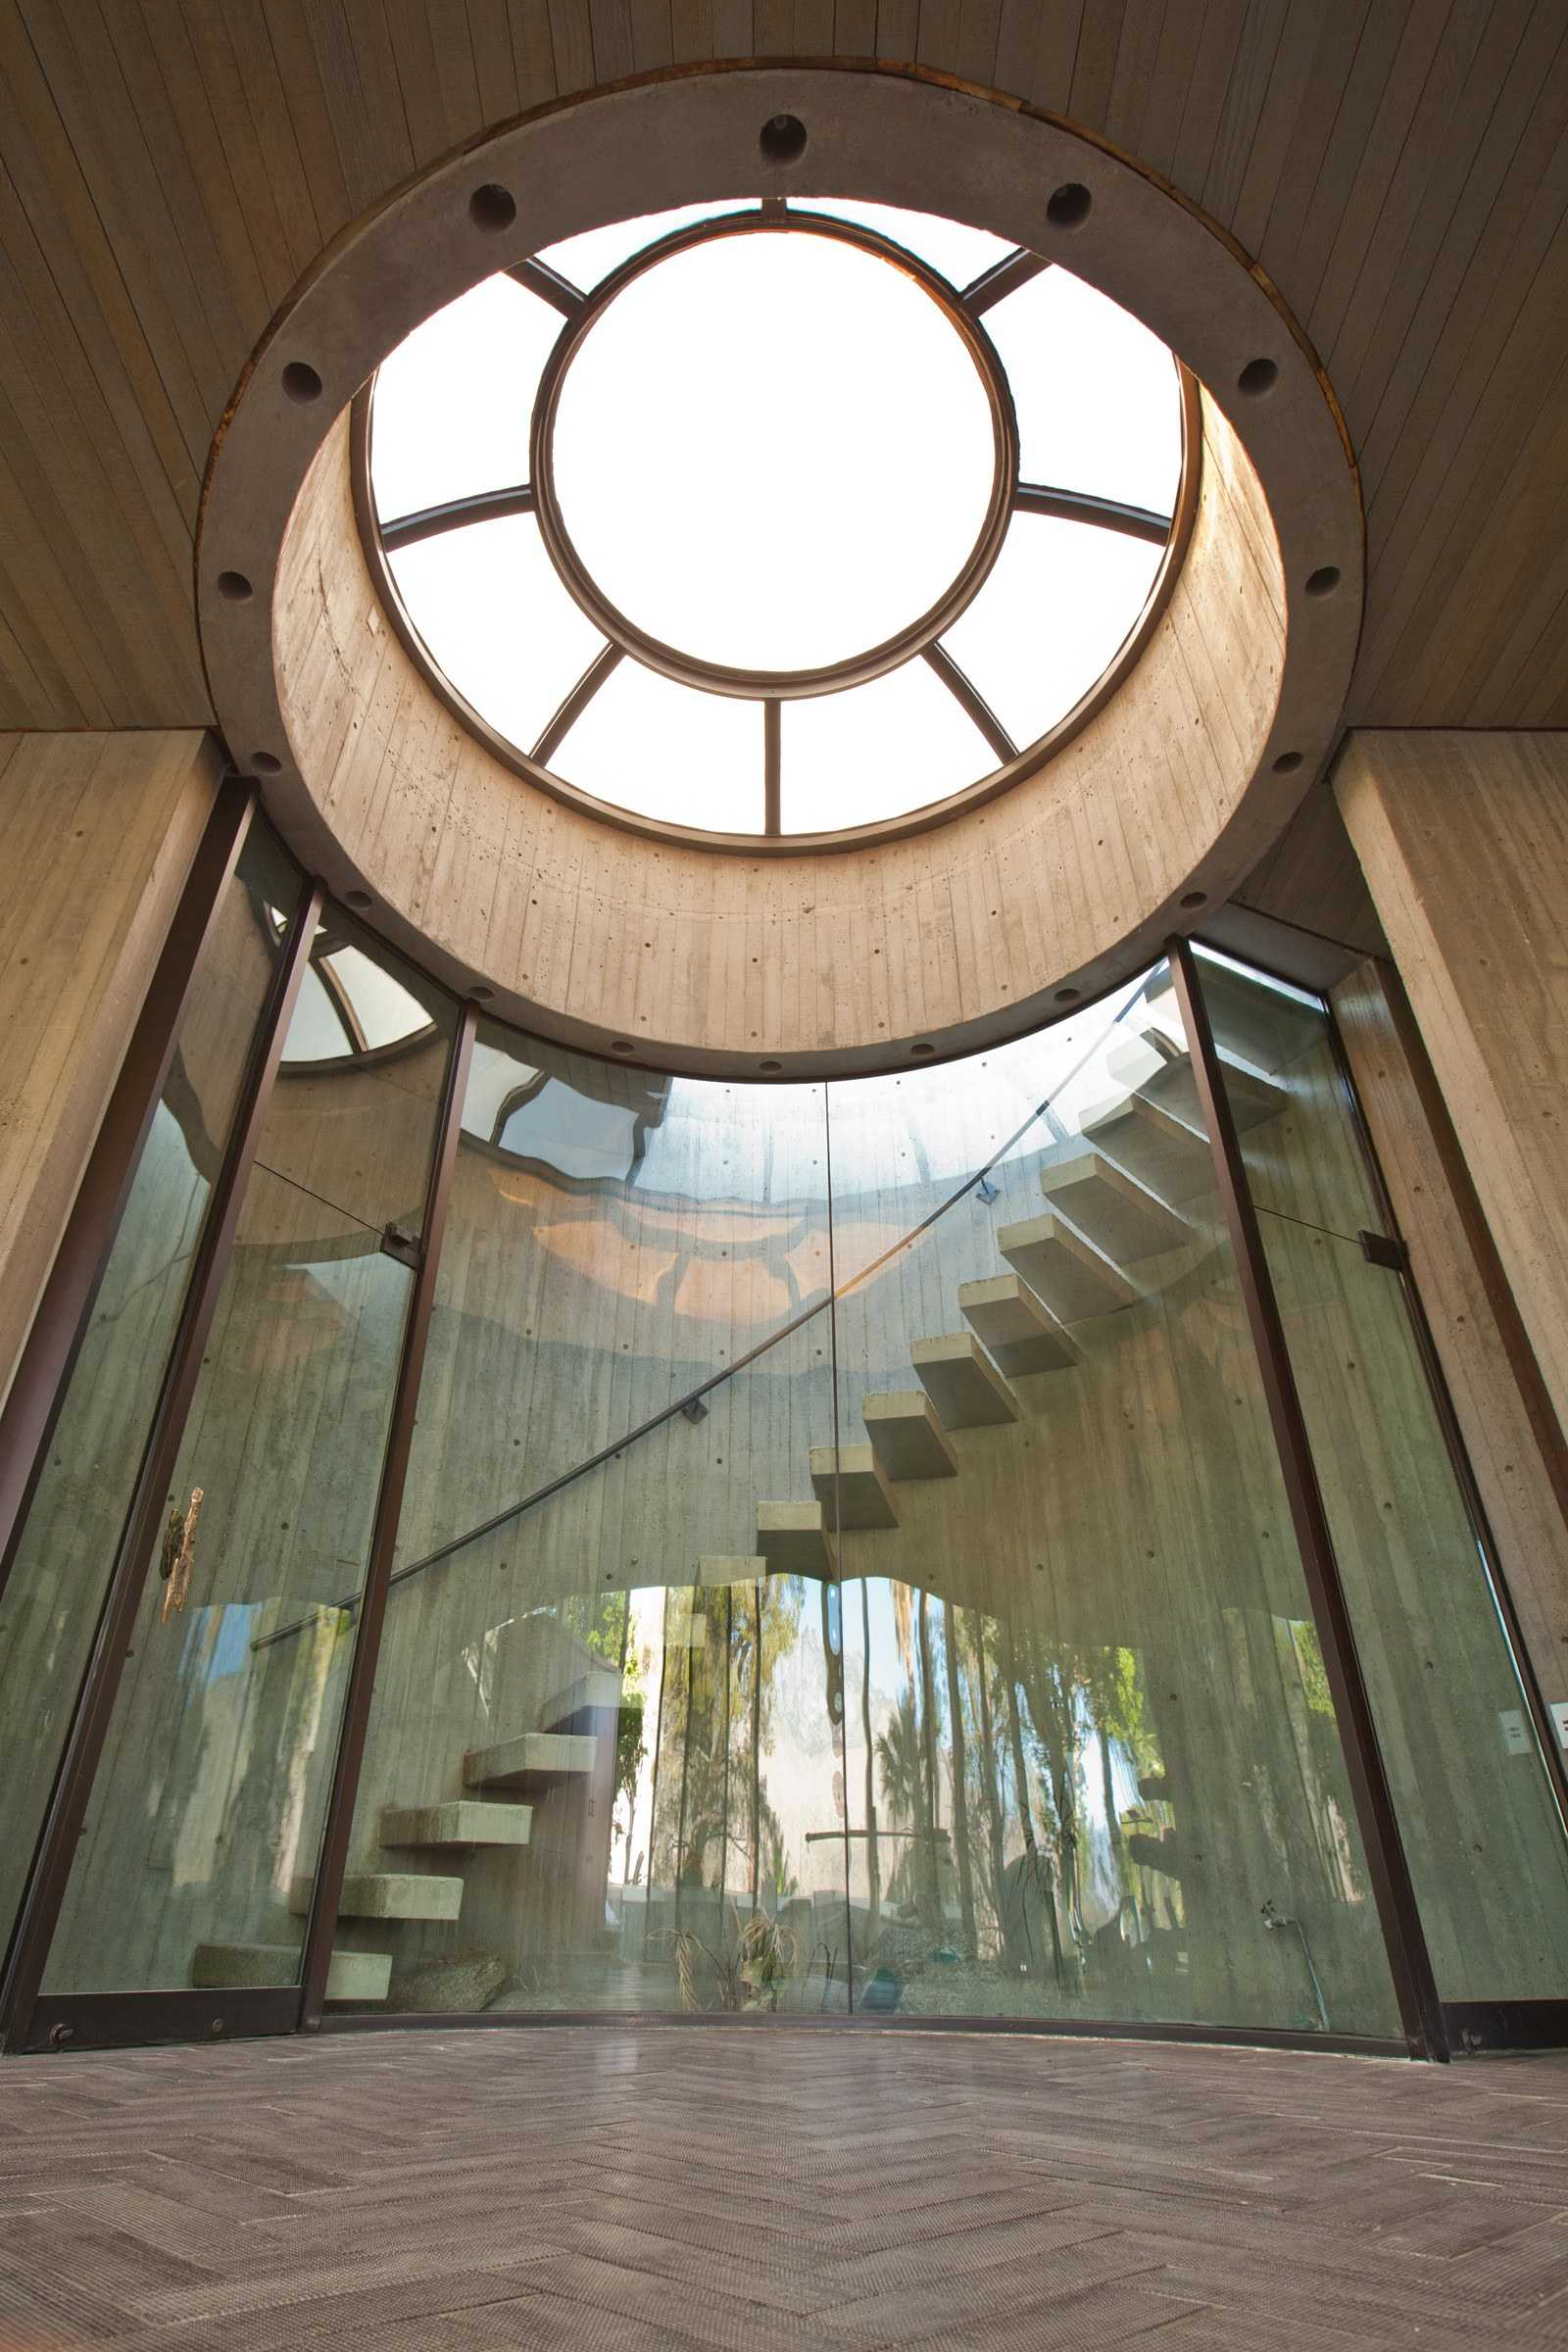 this-is-inside-the-Elrod-House-showing-the-grand-curves-of-the-home-and-a-view-of-the-floor-to-ceiling-glass-windows